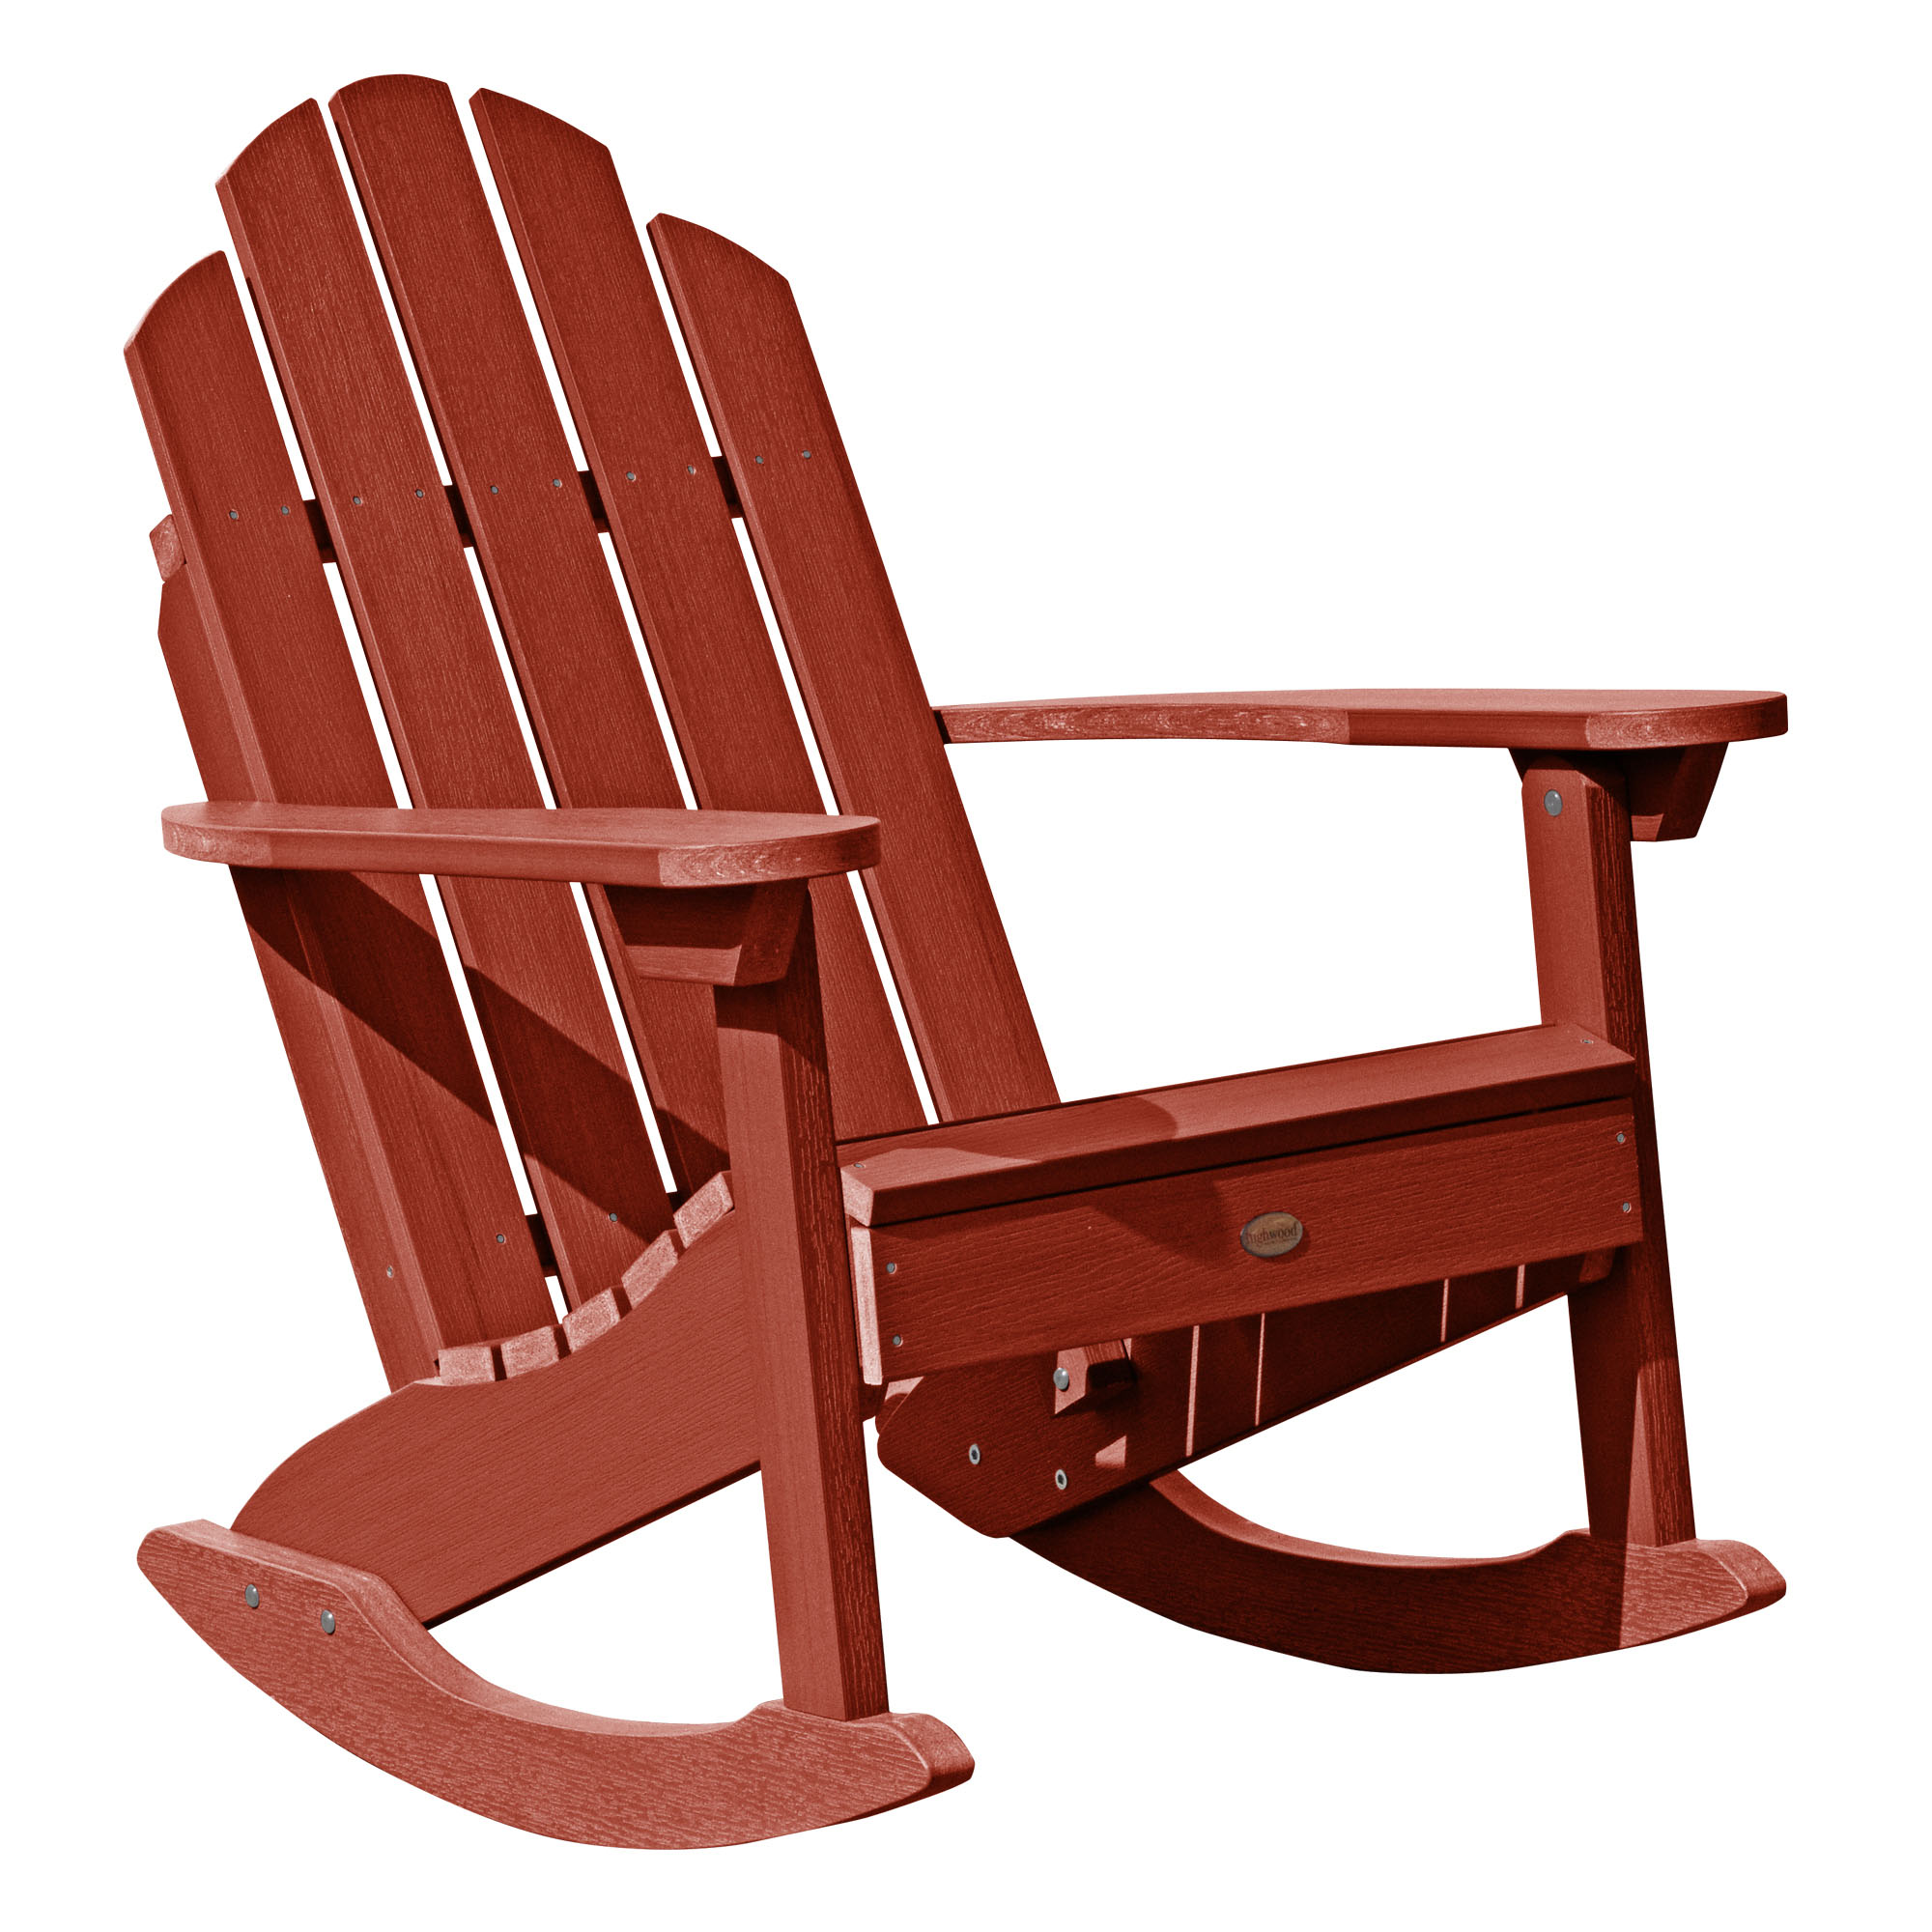 highwood® Eco-Friendly Classic Westport Adirondack Rocking Chair